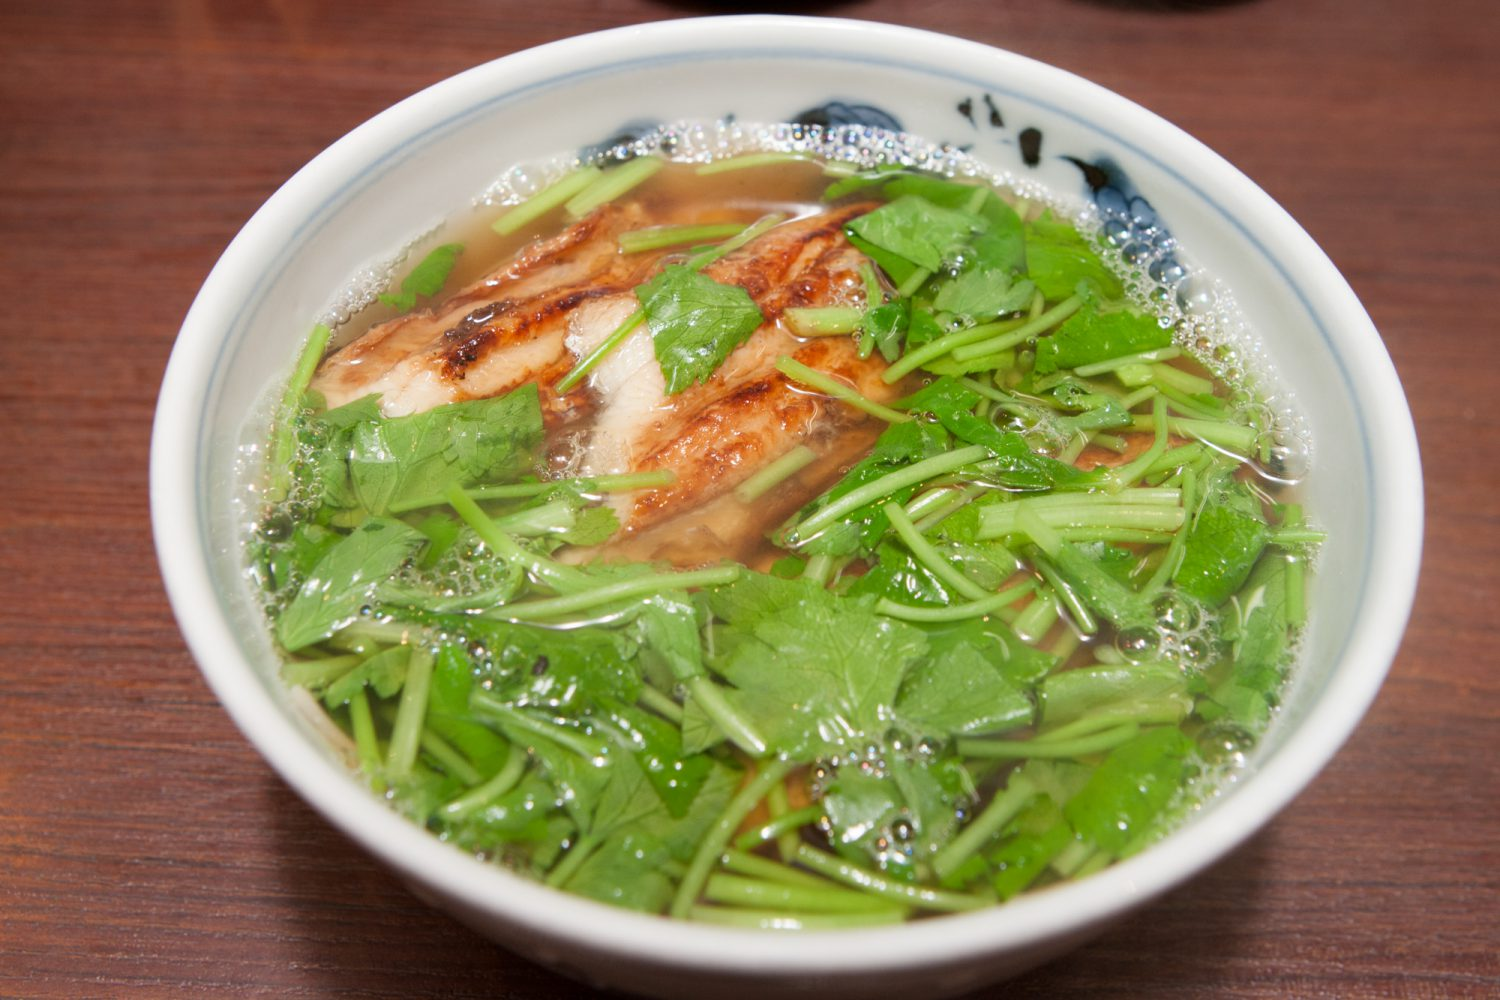 ANAGO(穴子) : Noodles with cooked conger eel